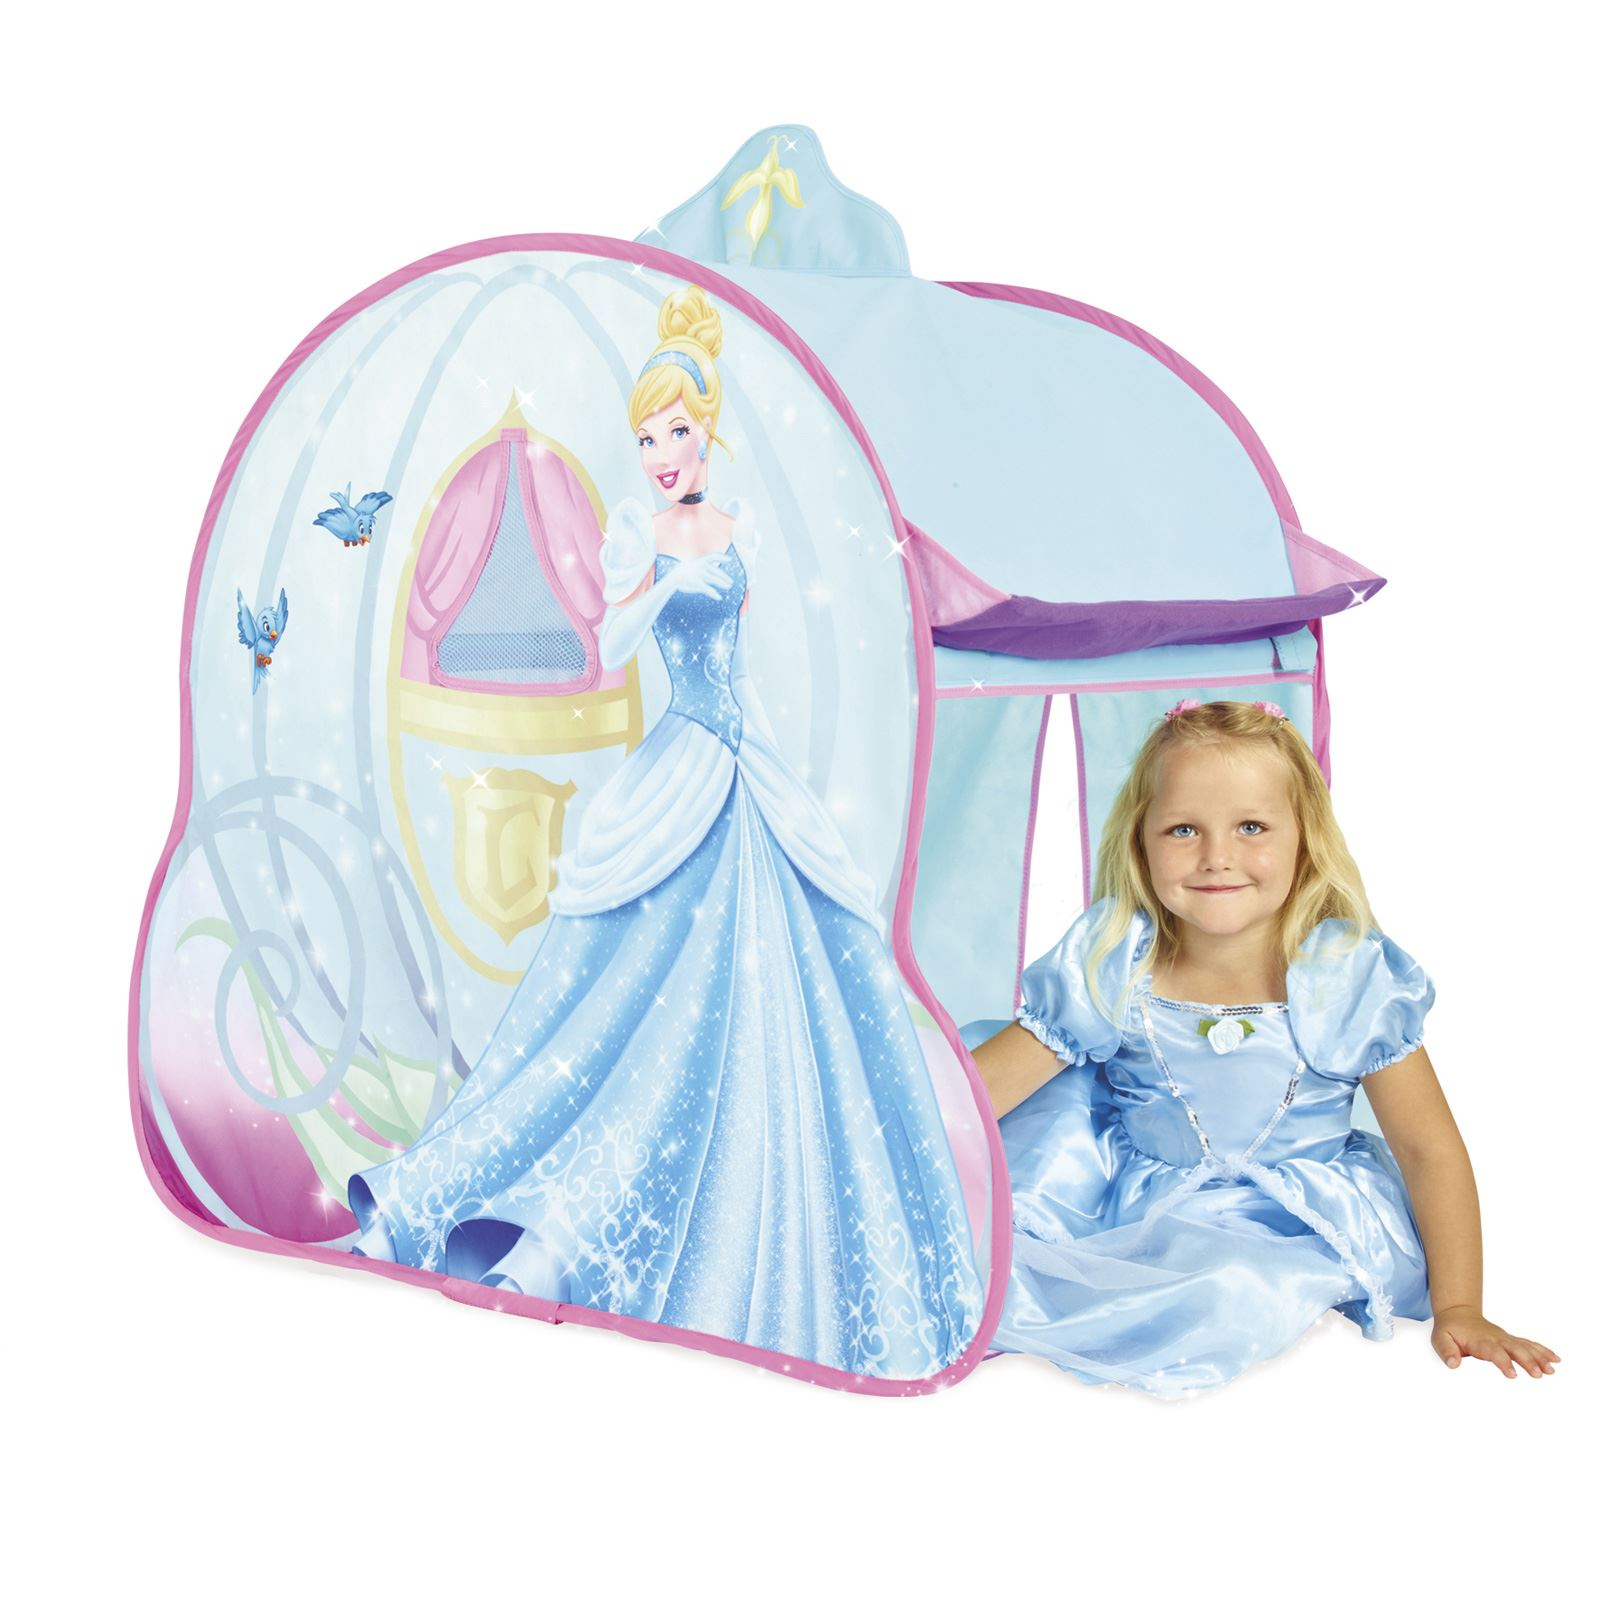 pop up spiel zelte kinder disney prinzessin eisk nigin autos minions ebay. Black Bedroom Furniture Sets. Home Design Ideas